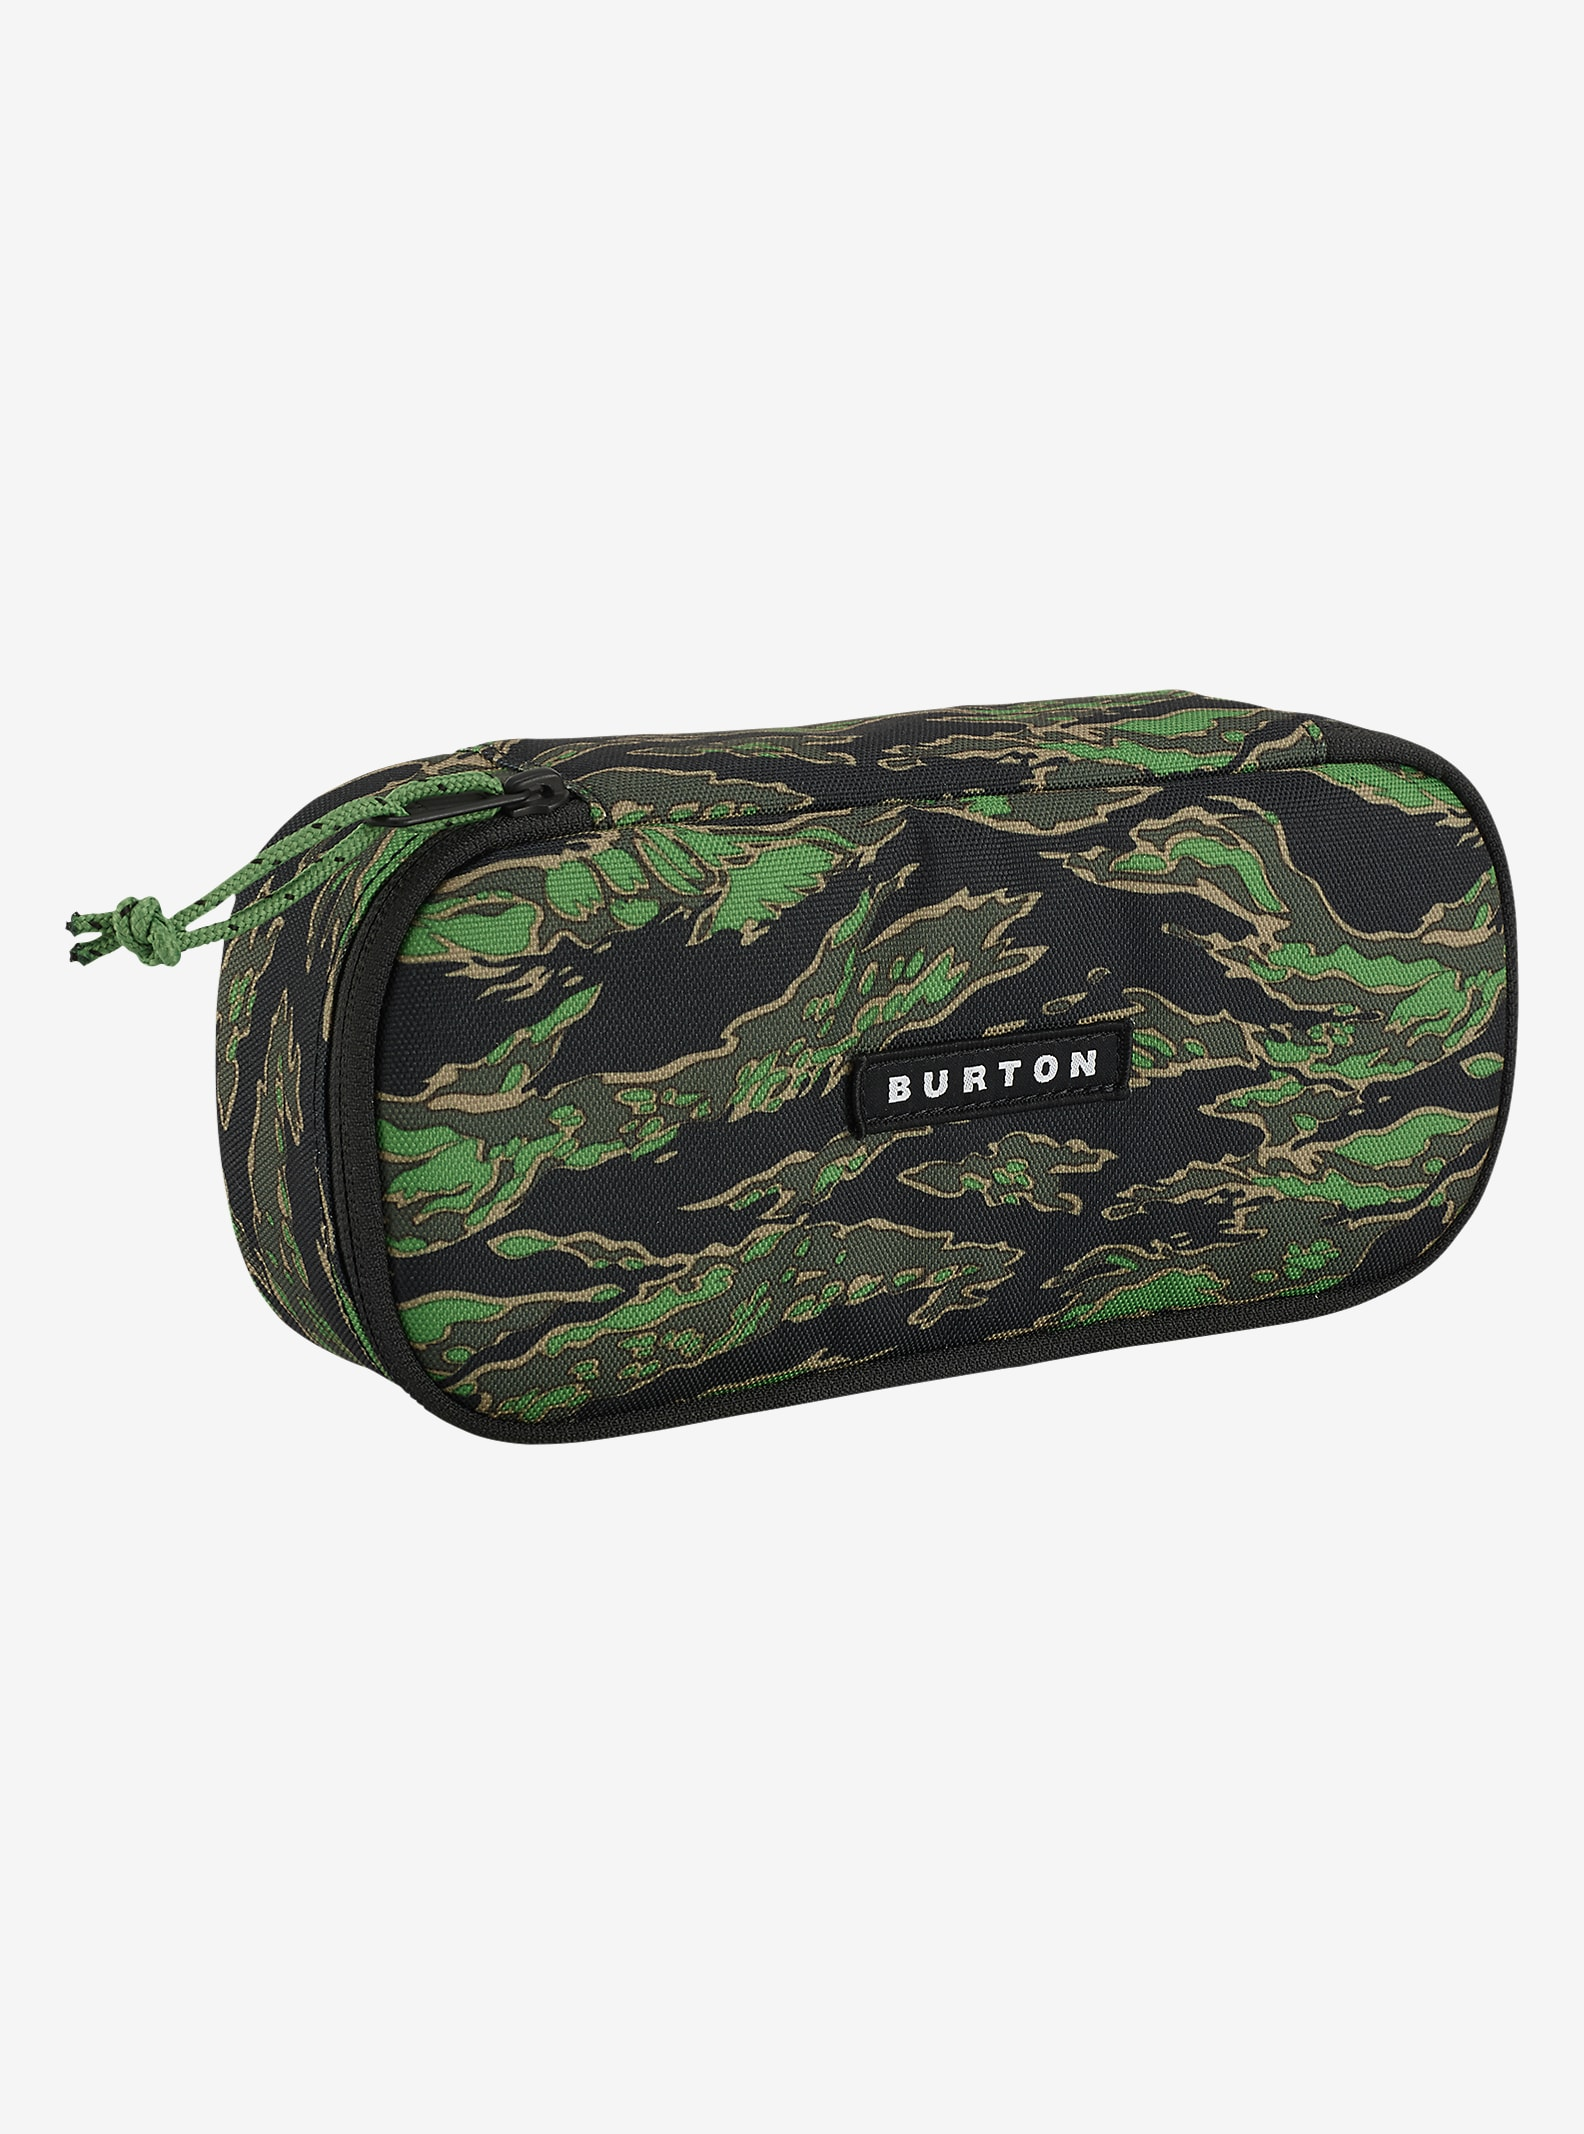 Burton Switchback Case shown in Slime Camo Print